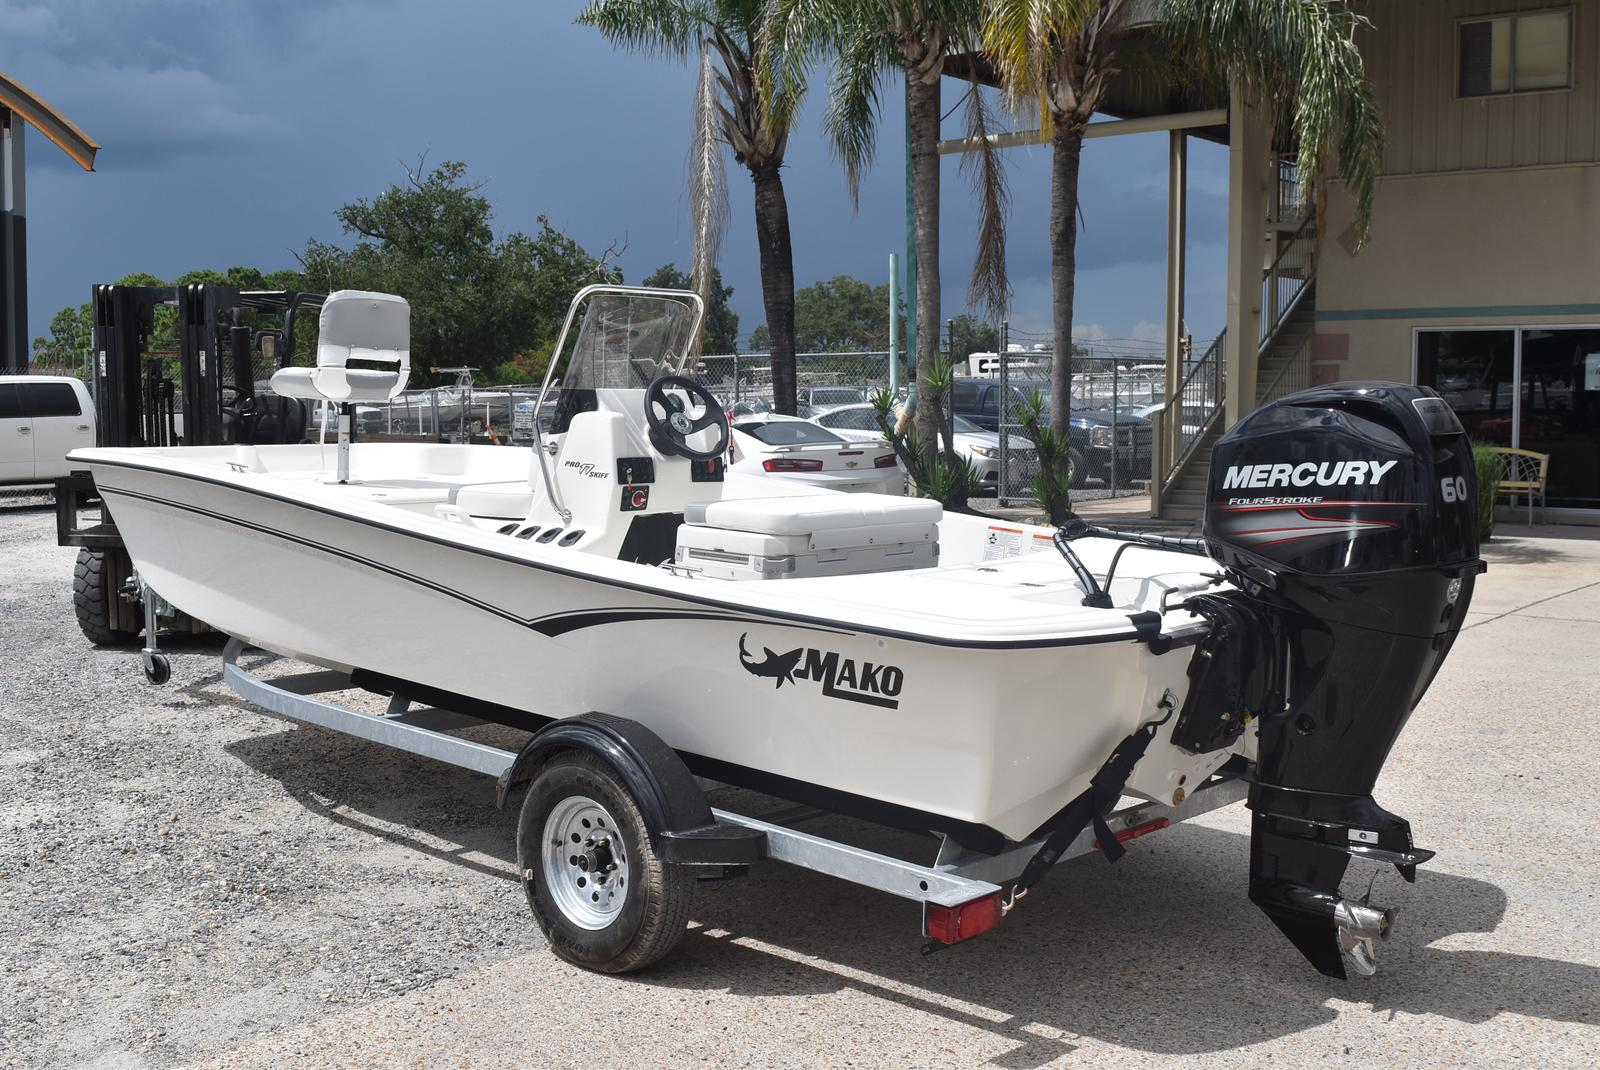 2020 Mako boat for sale, model of the boat is Pro Skiff 17, 75 ELPT & Image # 158 of 702